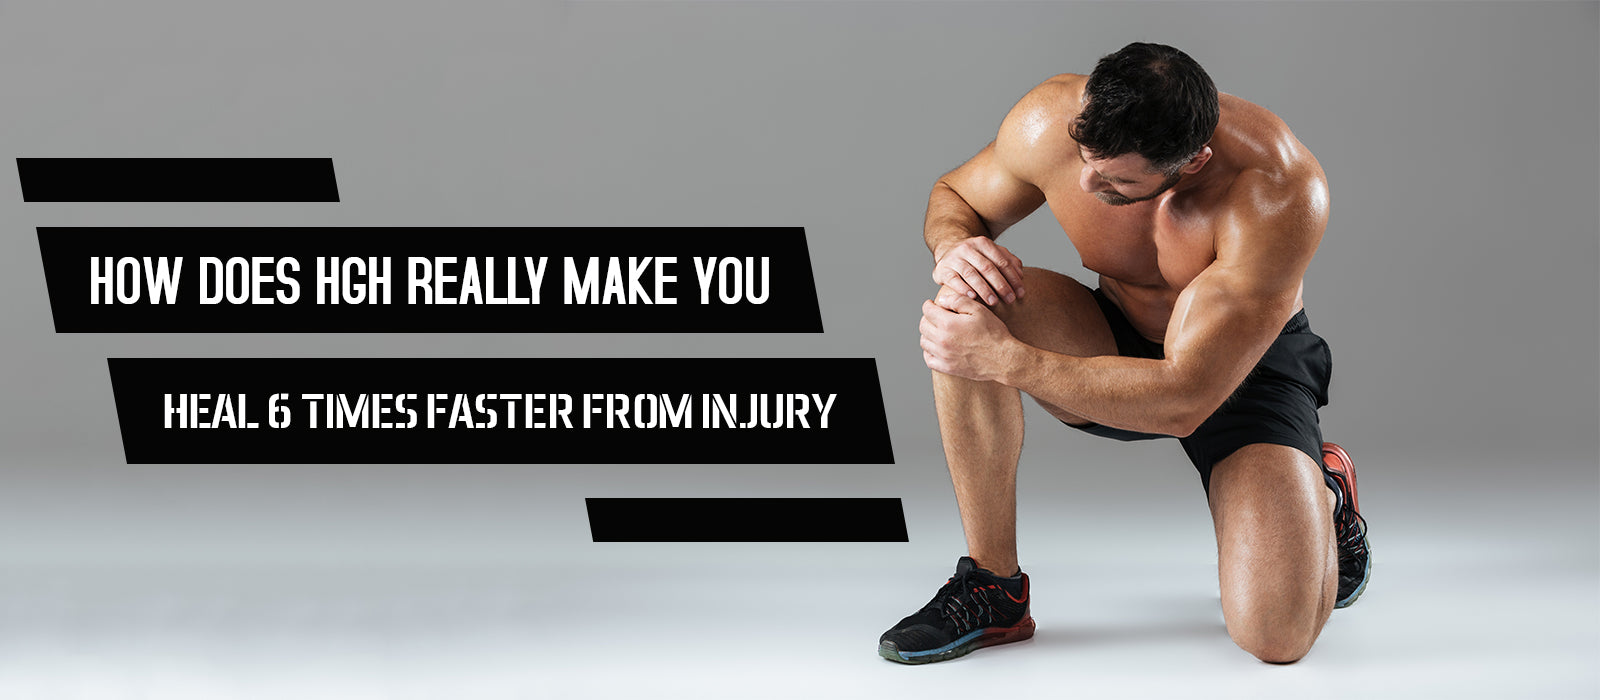 How Does HGH Really Make You Heal 6 Times Faster From Injury